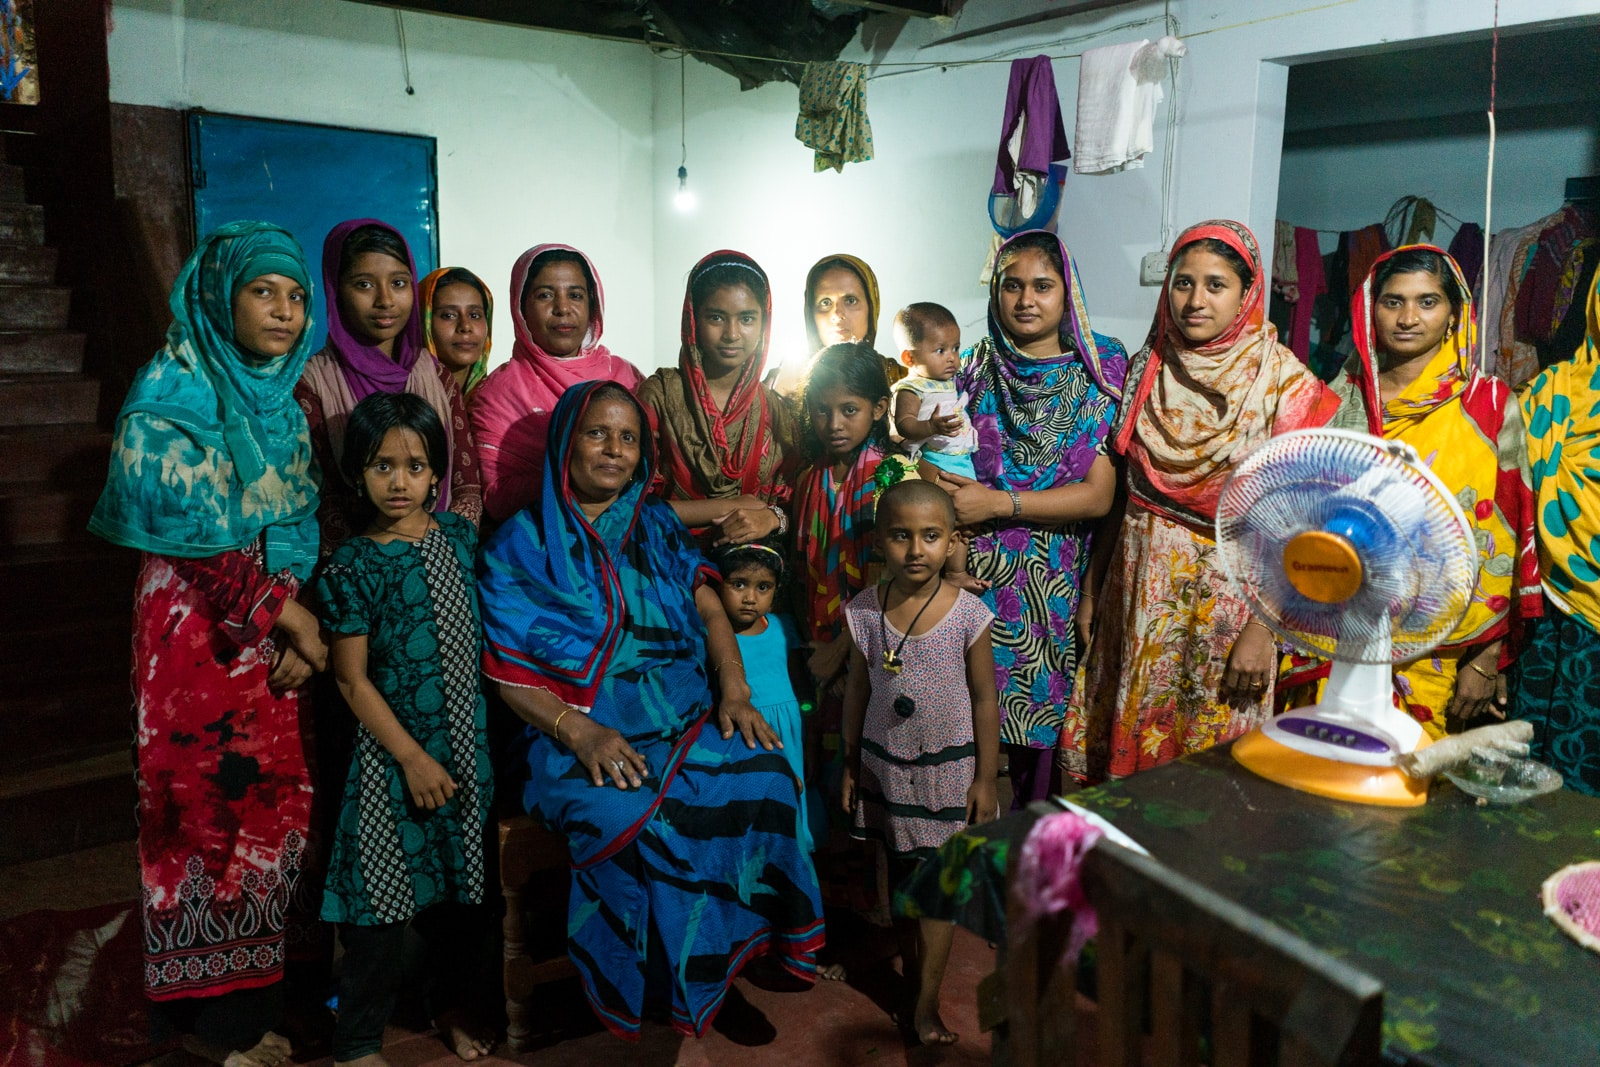 Guide to female travel in Bangladesh - Group of women in the back room of a home - Lost With Purpose travel blog